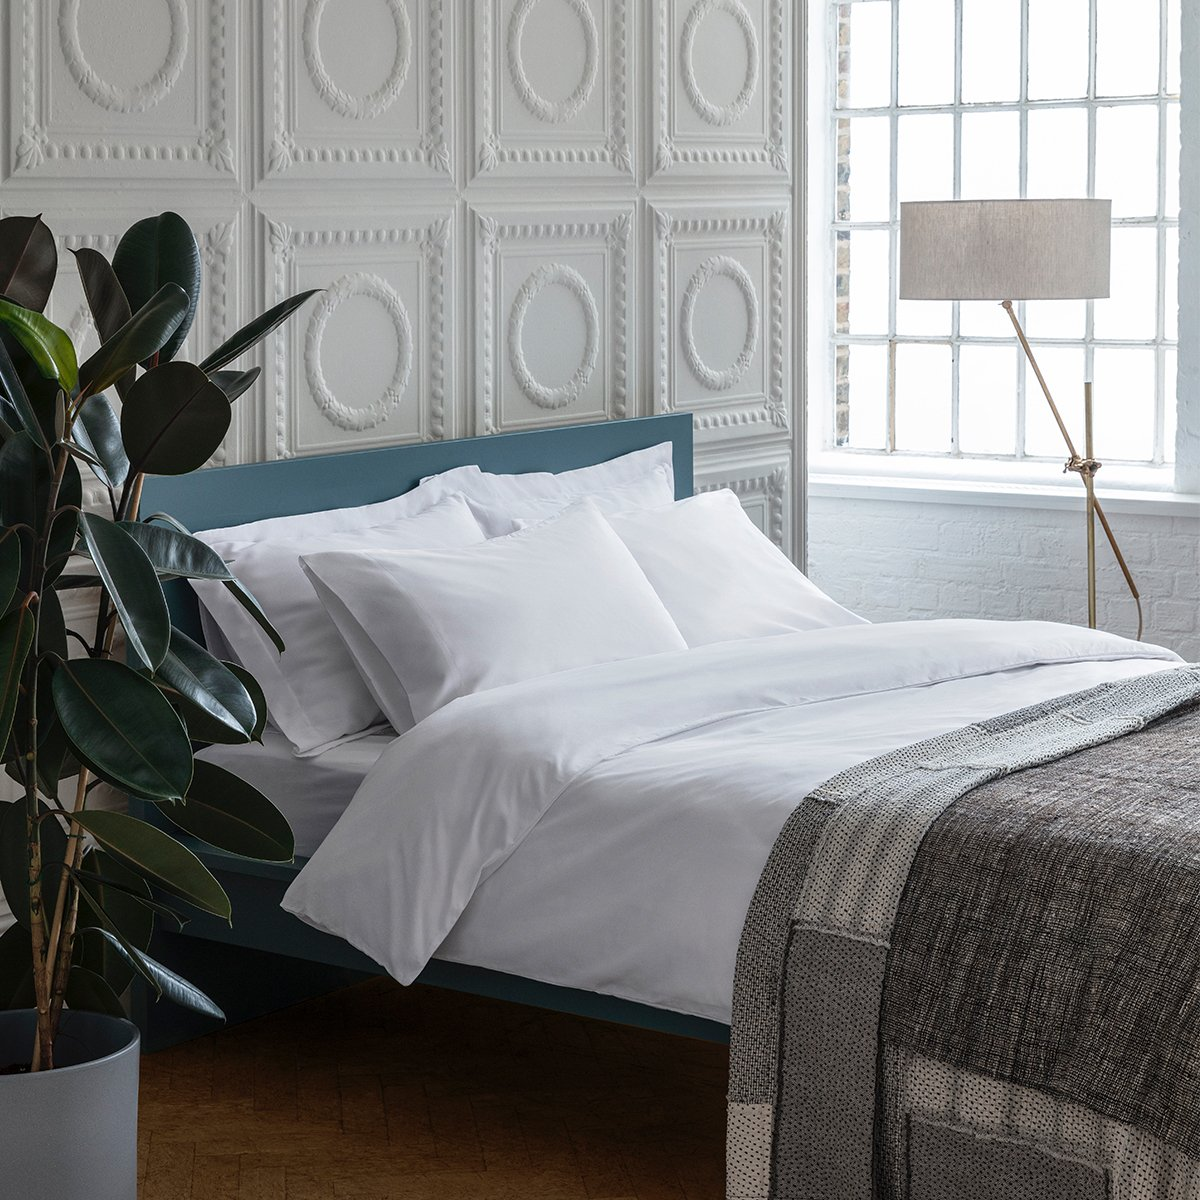 Rise and Fall bed linen made from certified cotton